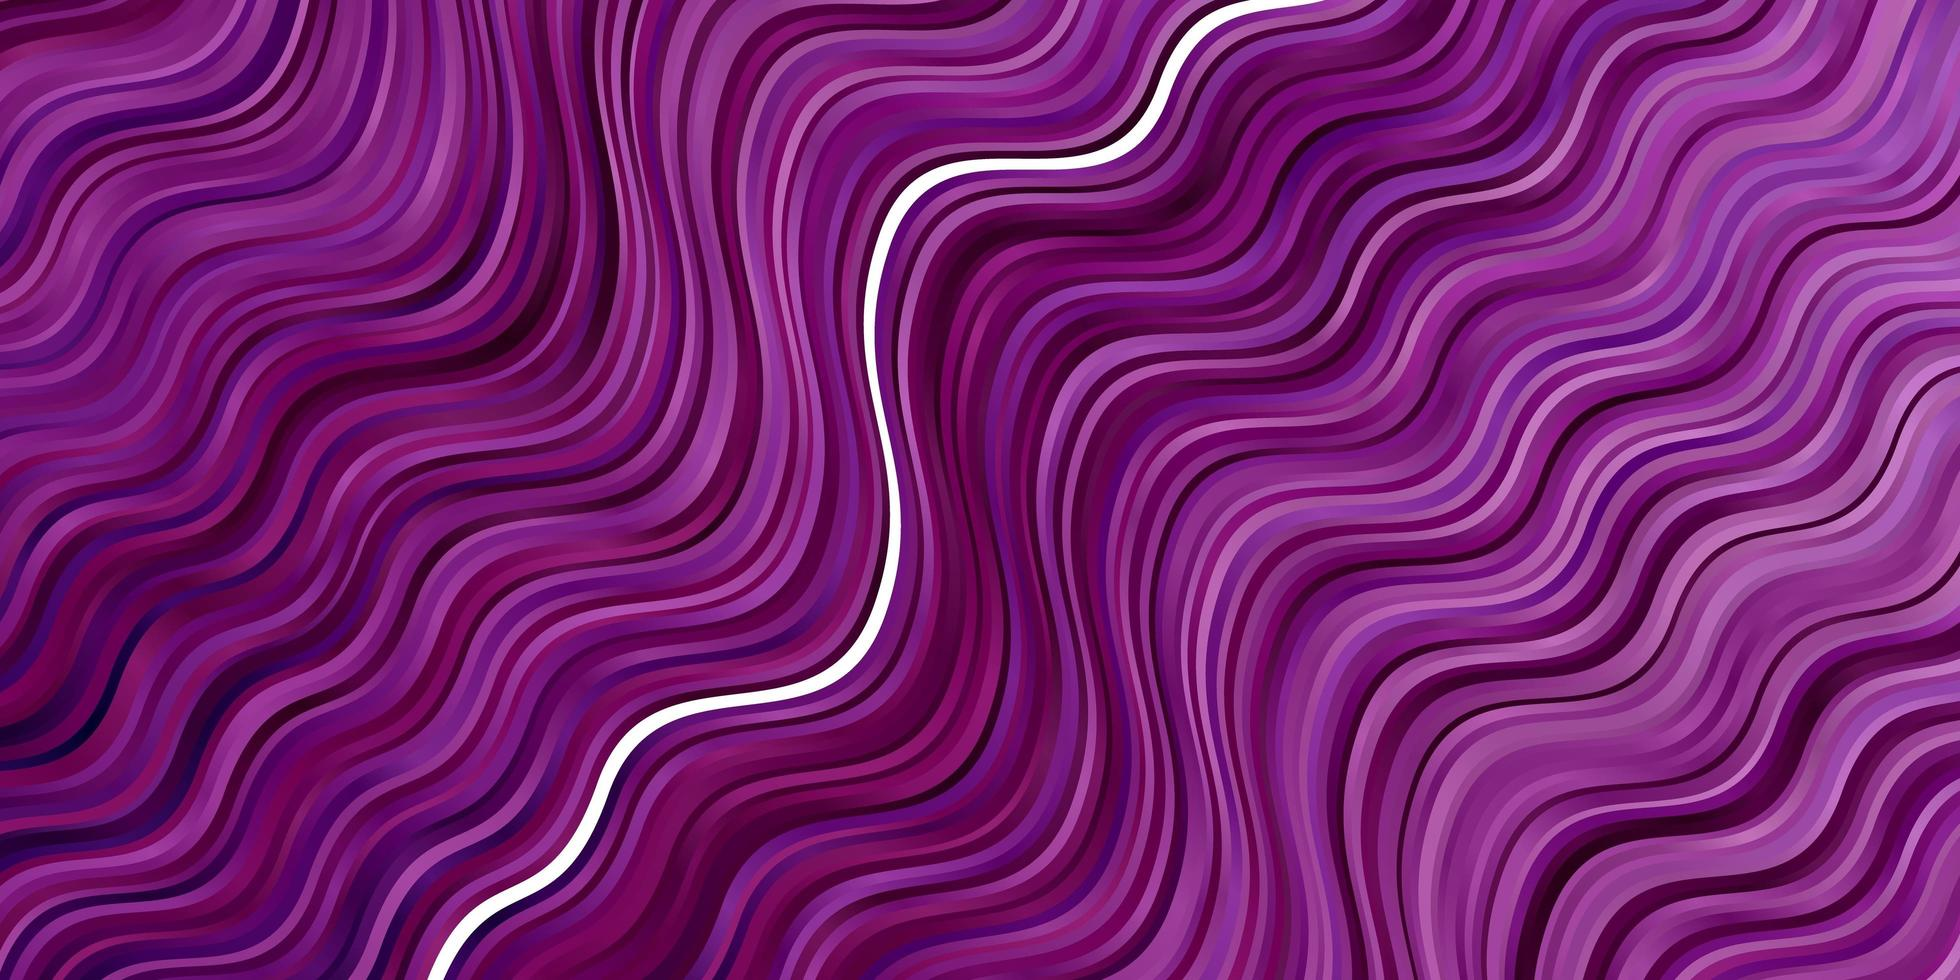 Light Purple, Pink vector backdrop with bent lines.